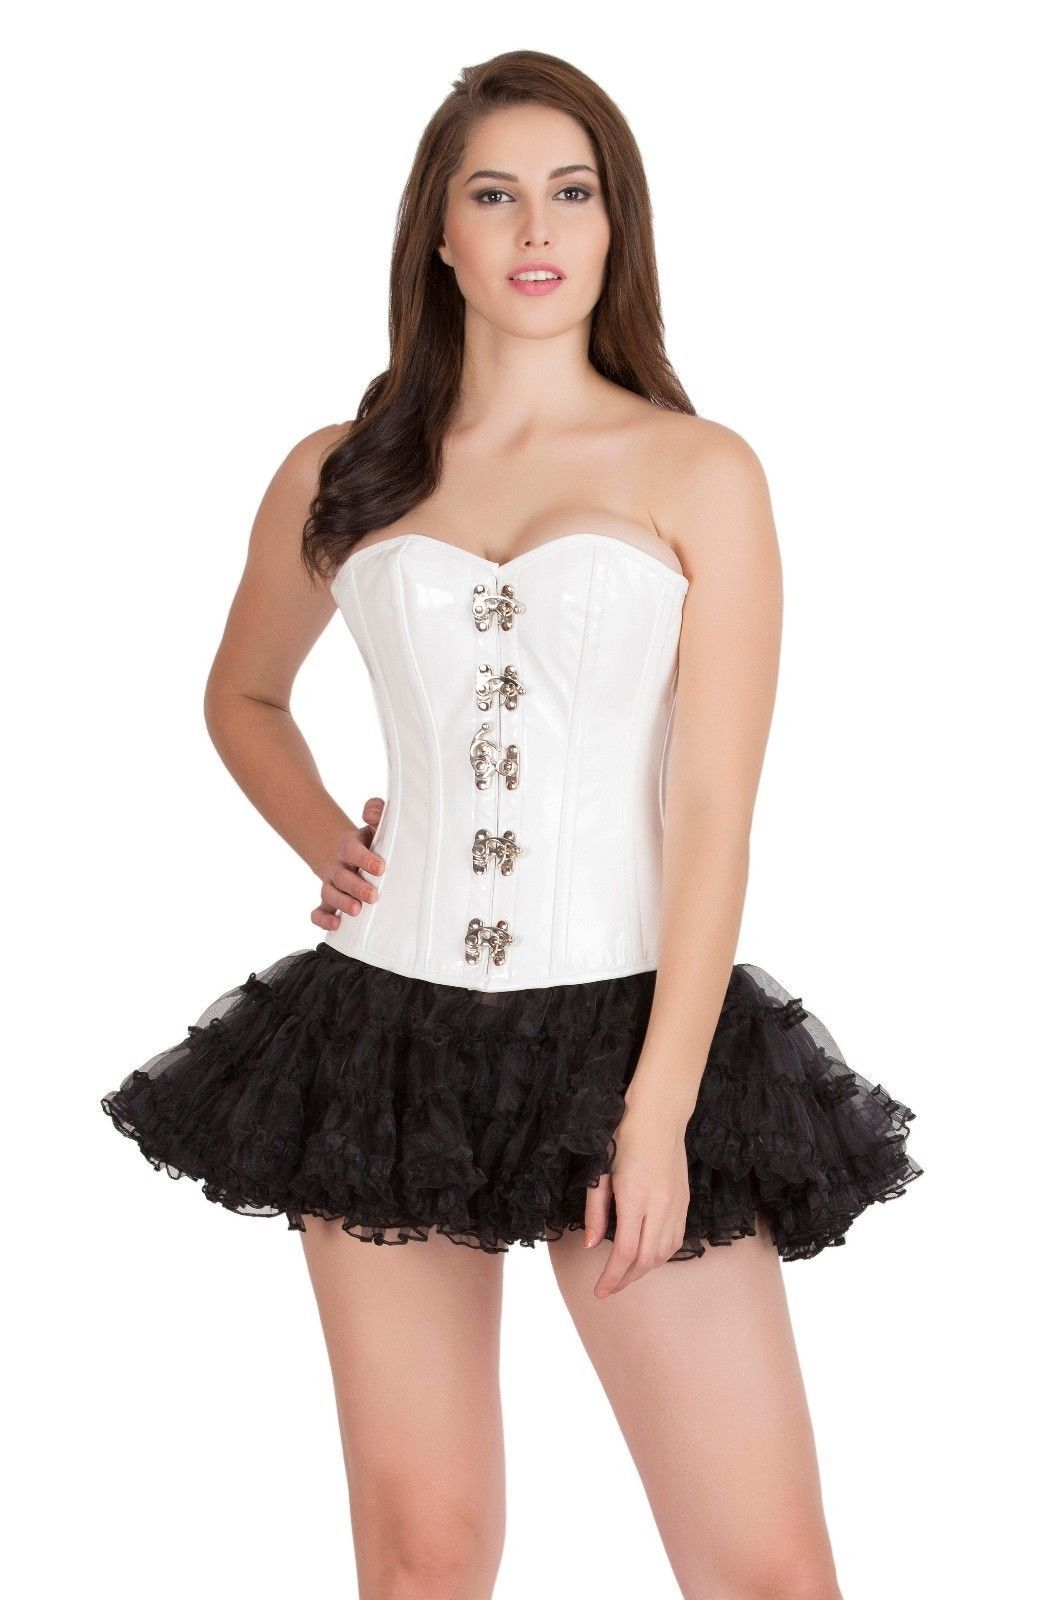 cab195fba10 57. 57. Previous. White PVC faux leather Goth Burlesque Steampunk tutu  Skirt Overbust Corset Dress